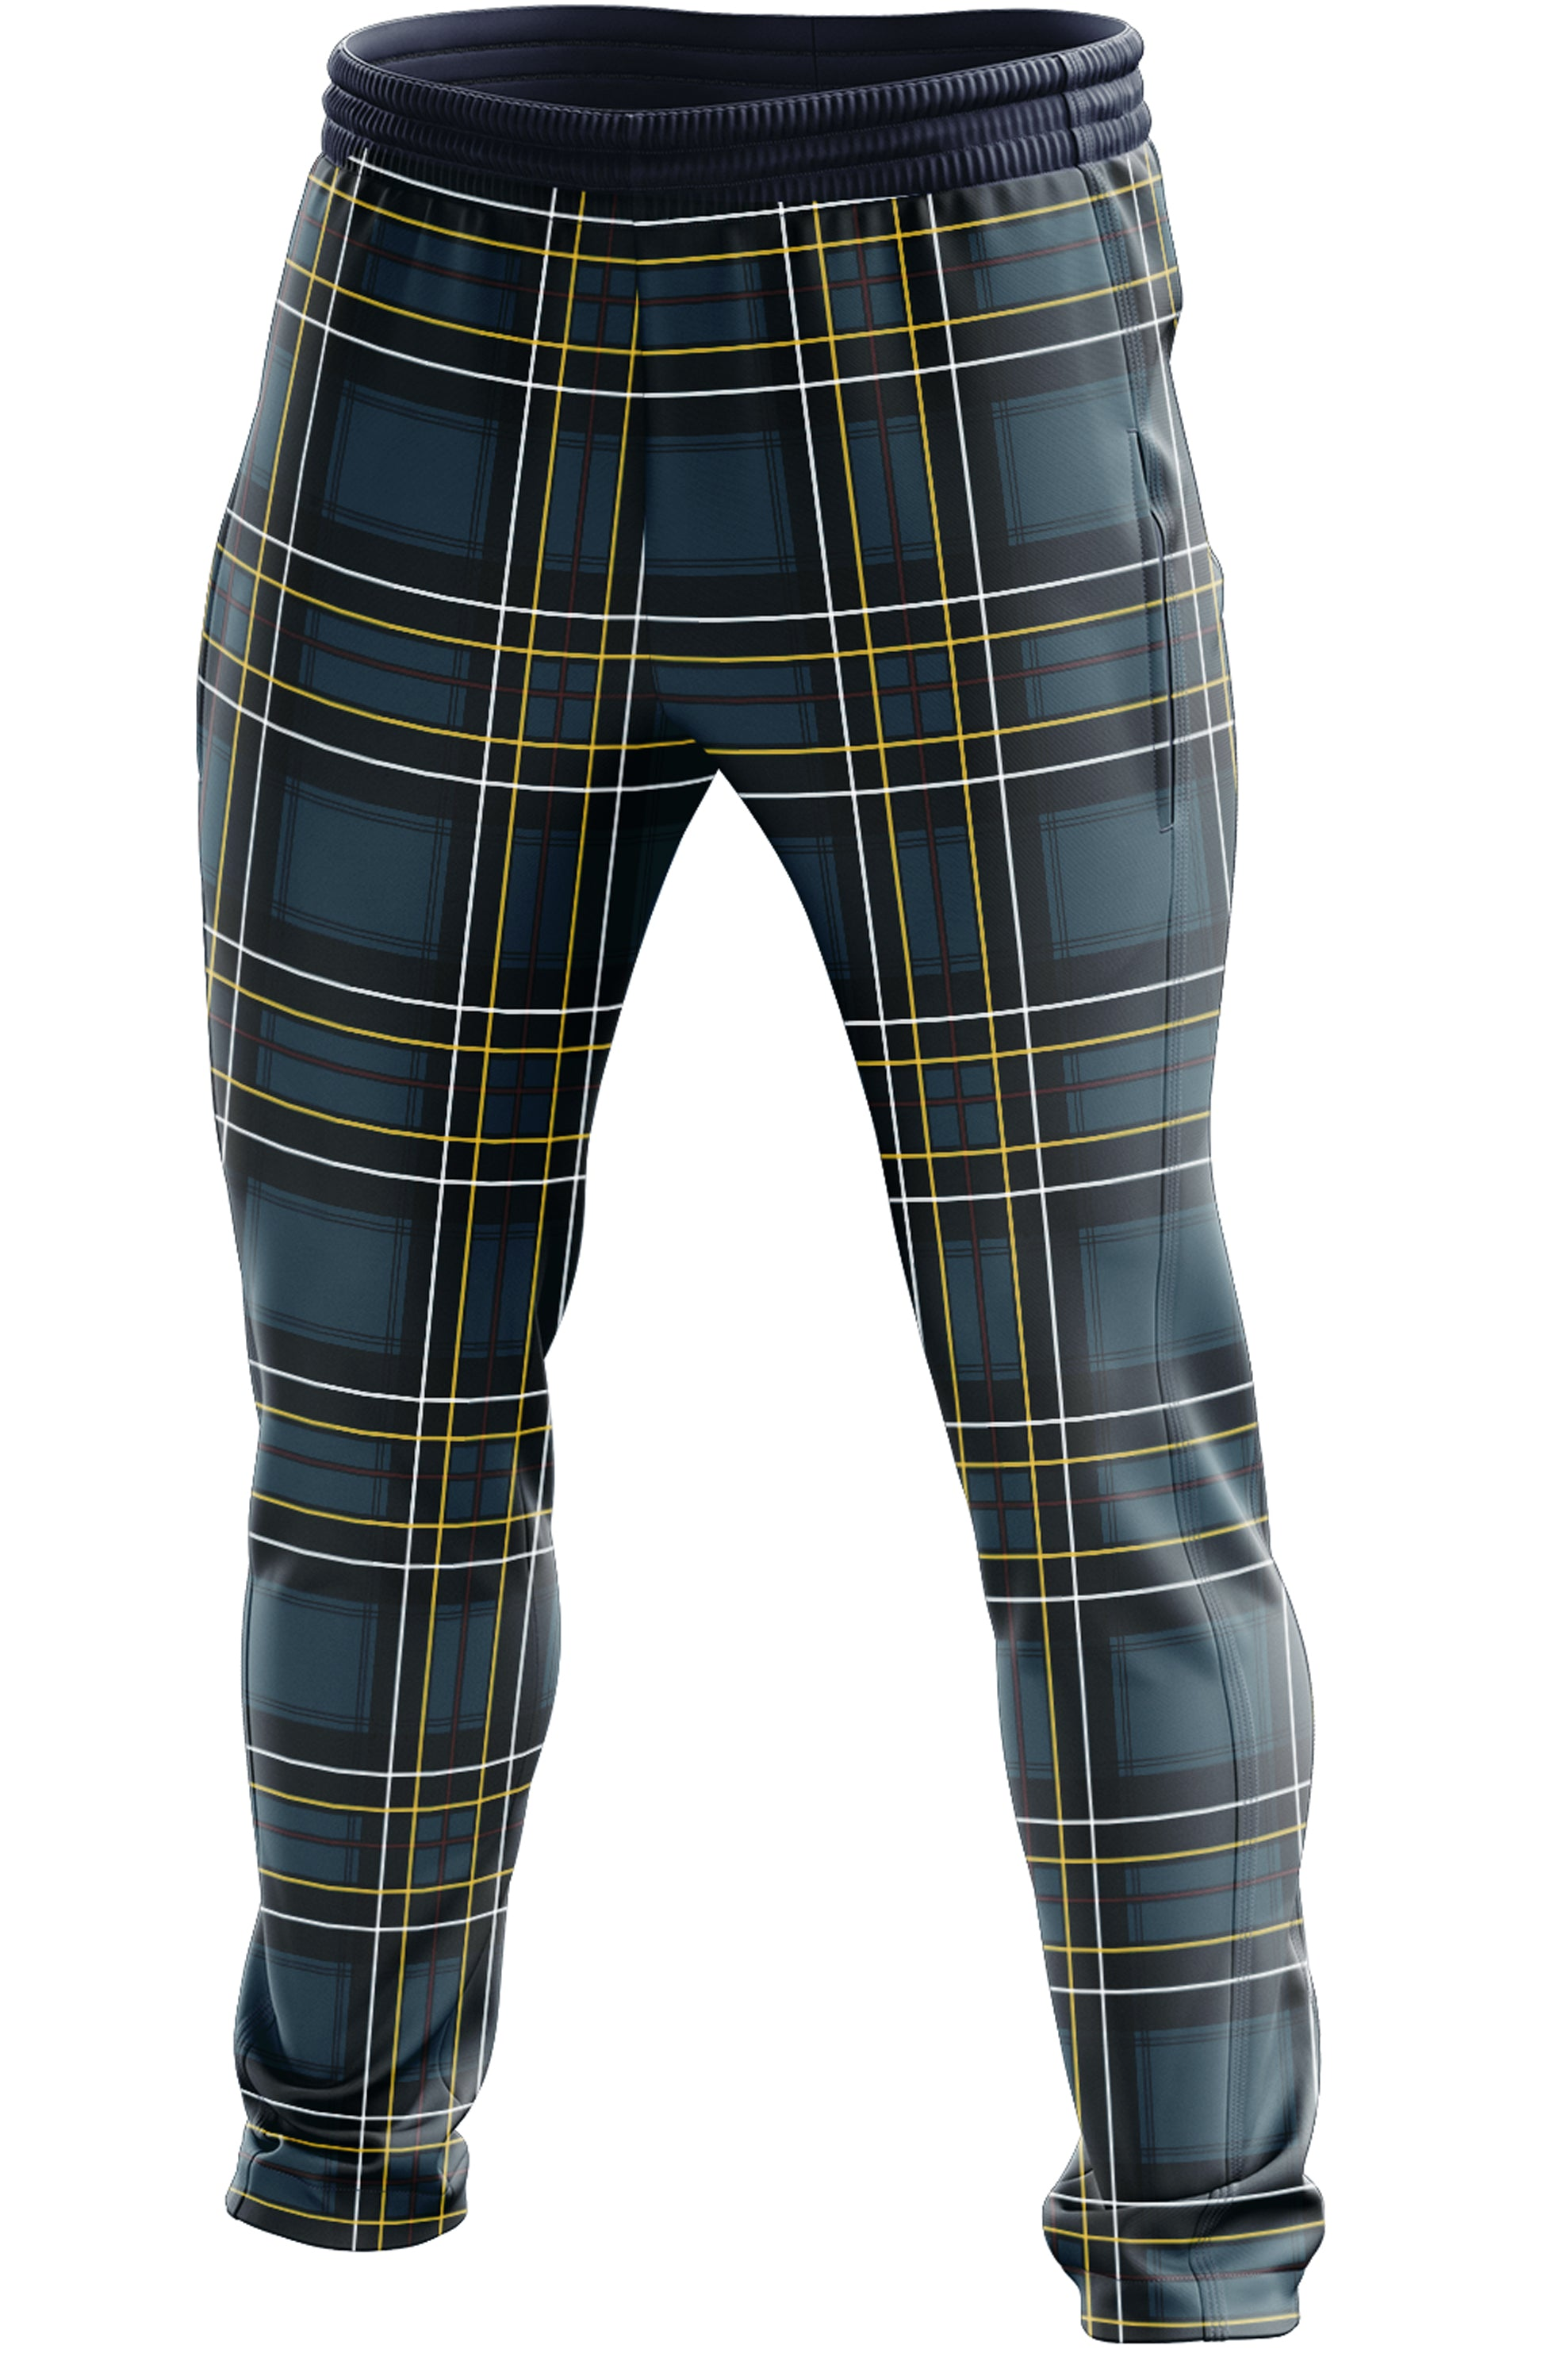 THE TARTAN TRACK PANTS